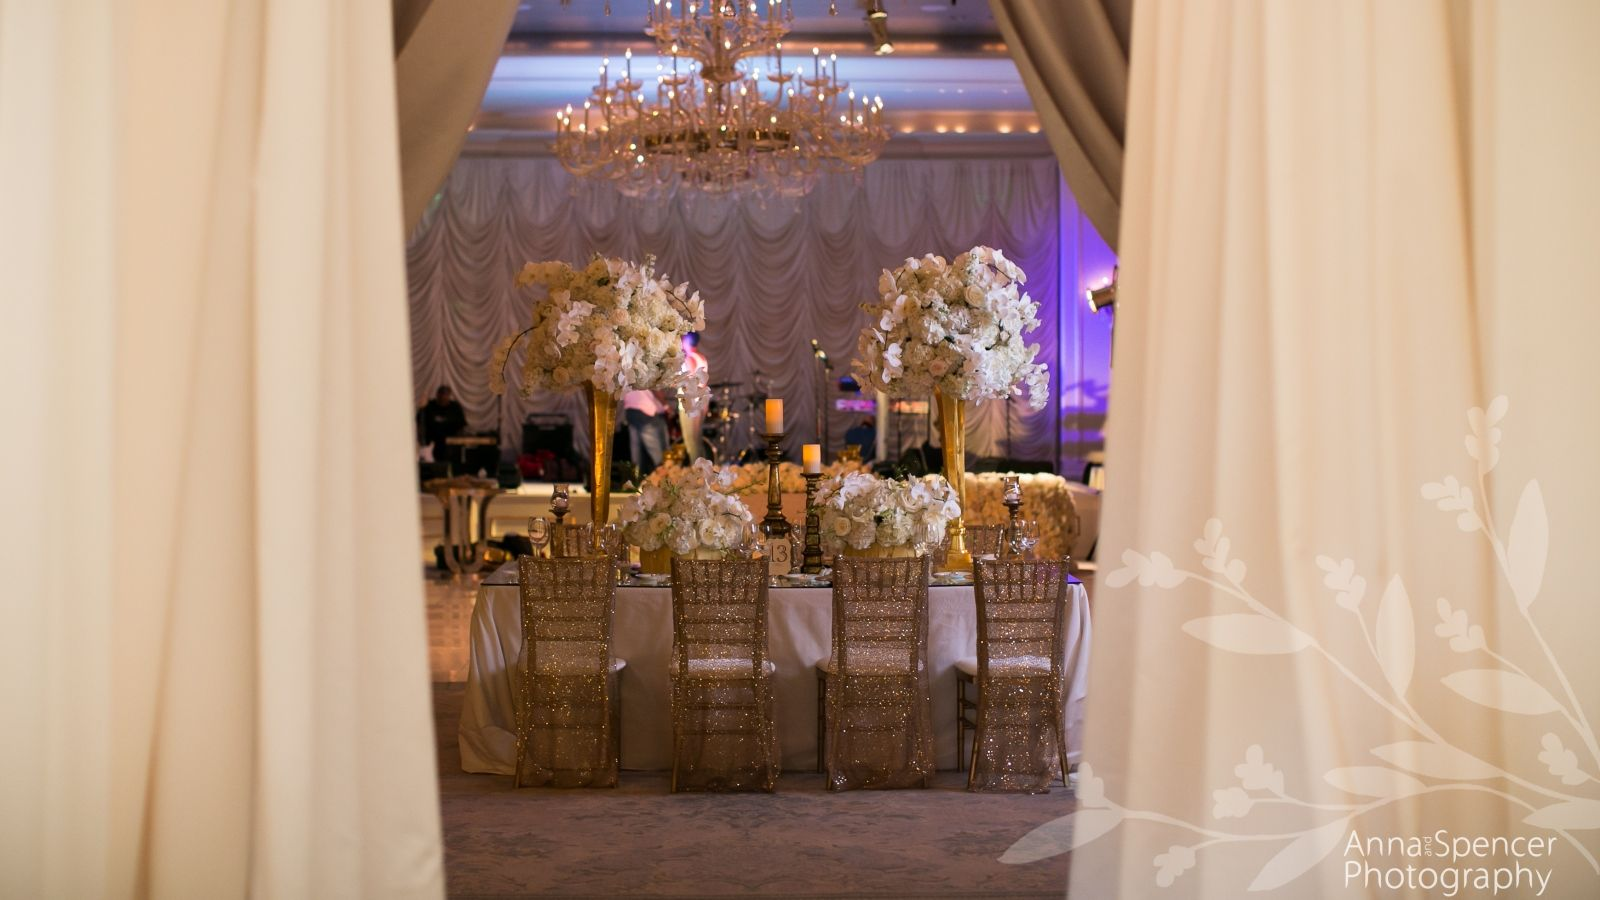 Wedding Reception Venues in Atlana - The St. Regis Atlanta